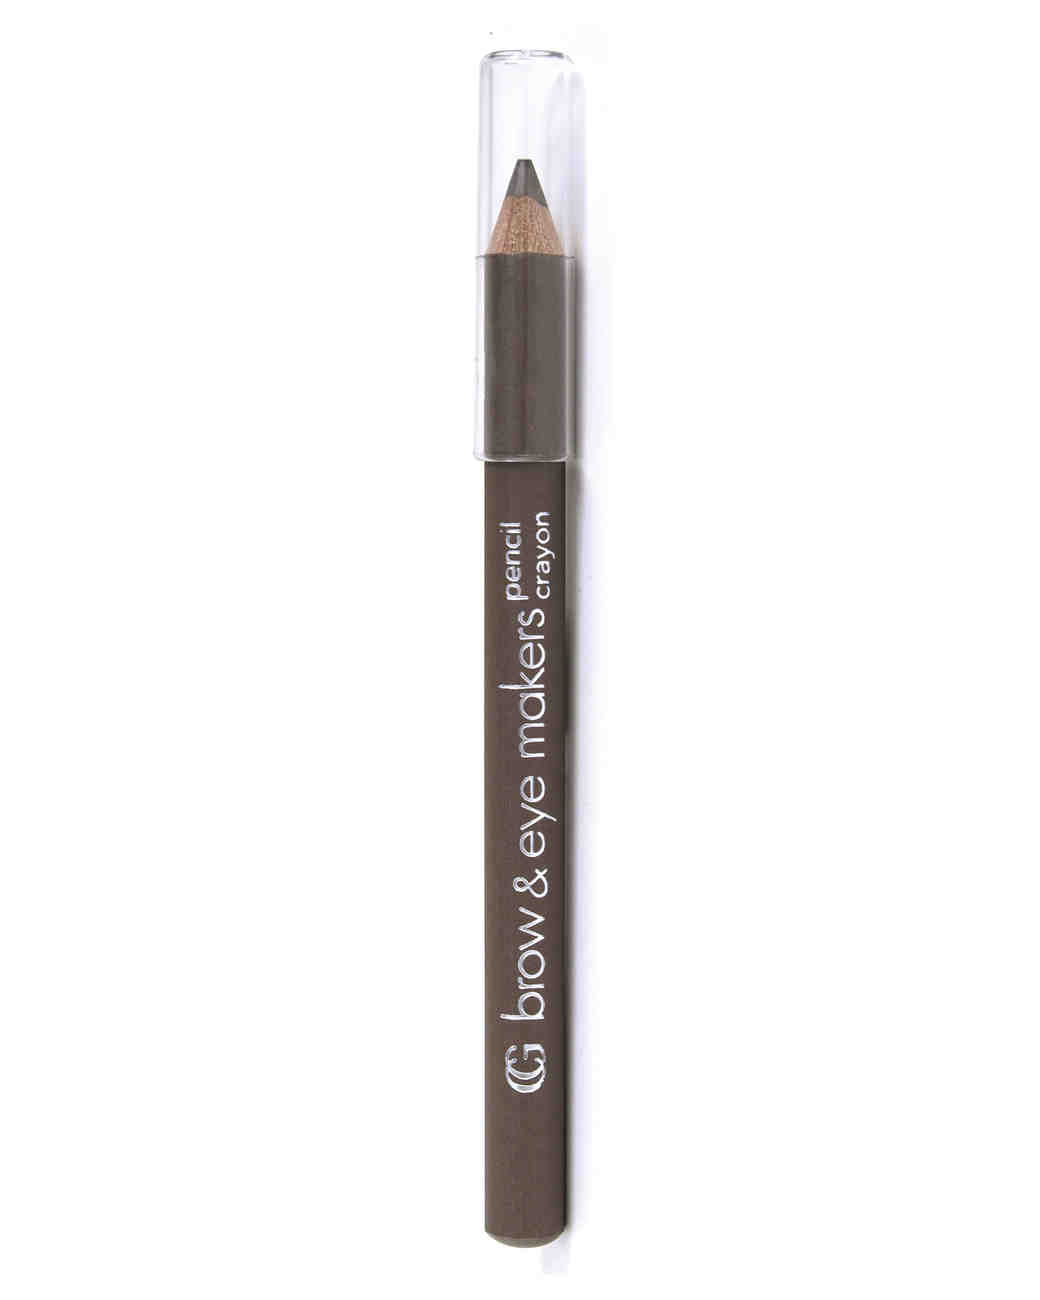 perfect-brow-guide-covergirl-brow-pencil-0915.jpg